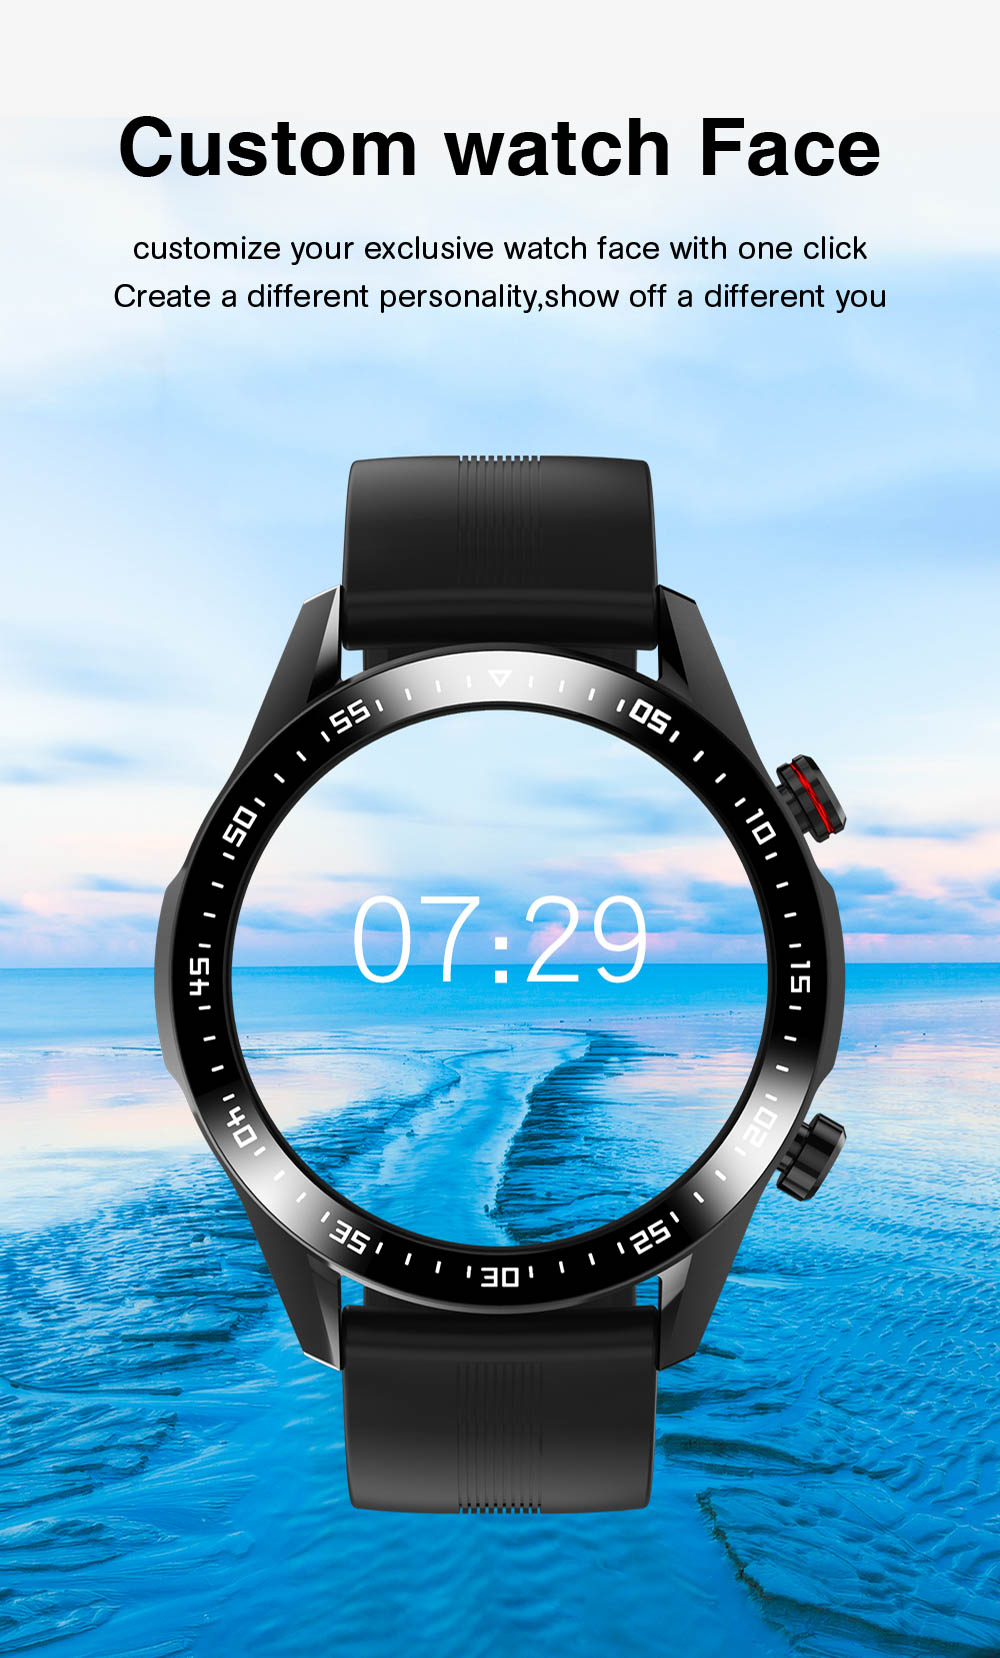 Hd344a547a3dd4a889e11a0cb7acac129y E1-2 Smart Watch Men Bluetooth Call Custom Dial Full Touch Screen Waterproof Smartwatch For Android IOS Sports Fitness Tracker